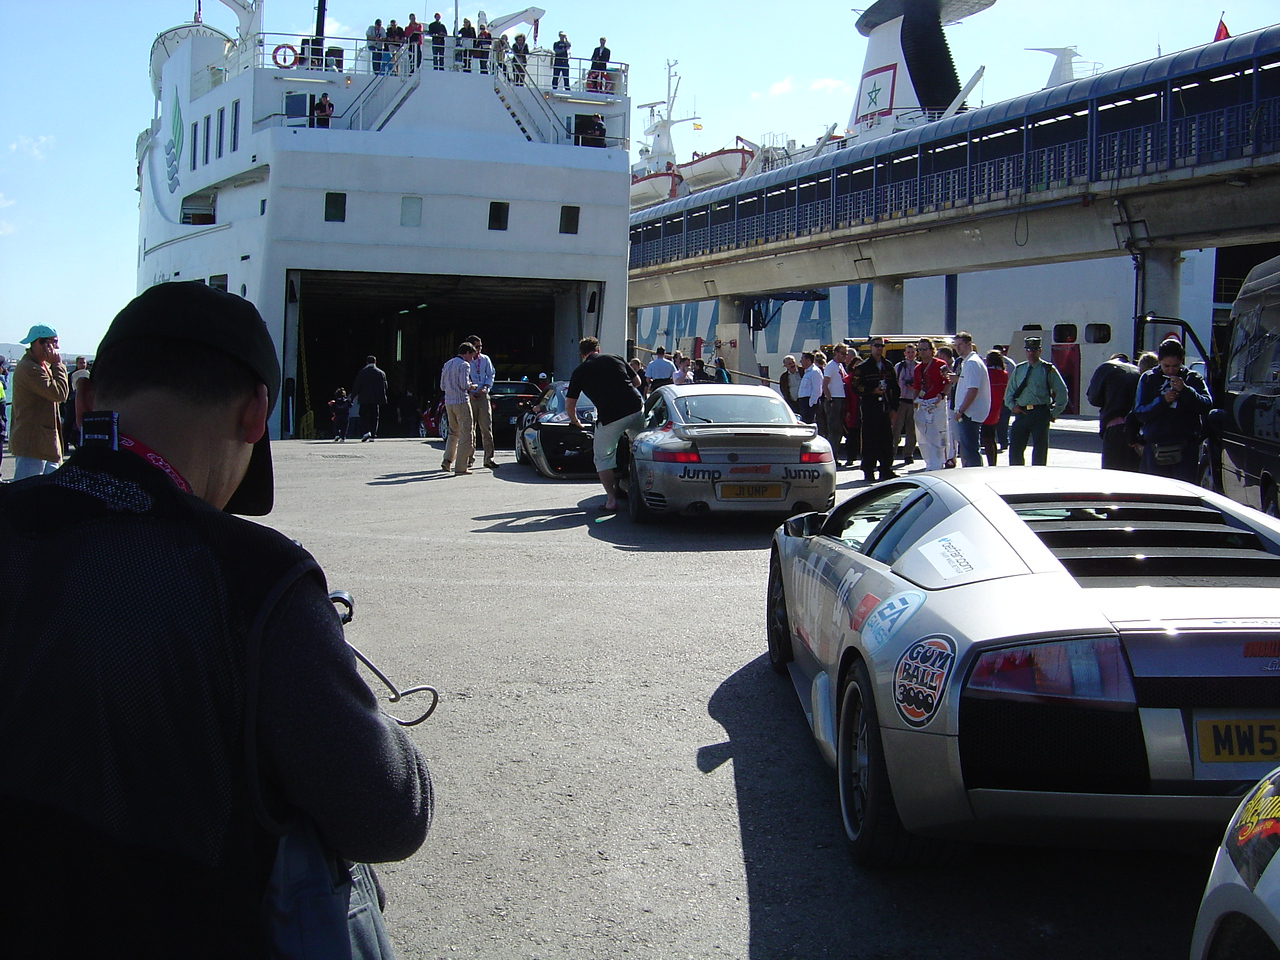 The loading process went smoothly with all the low clearance cars on the bottom and everyone else on the second tier.